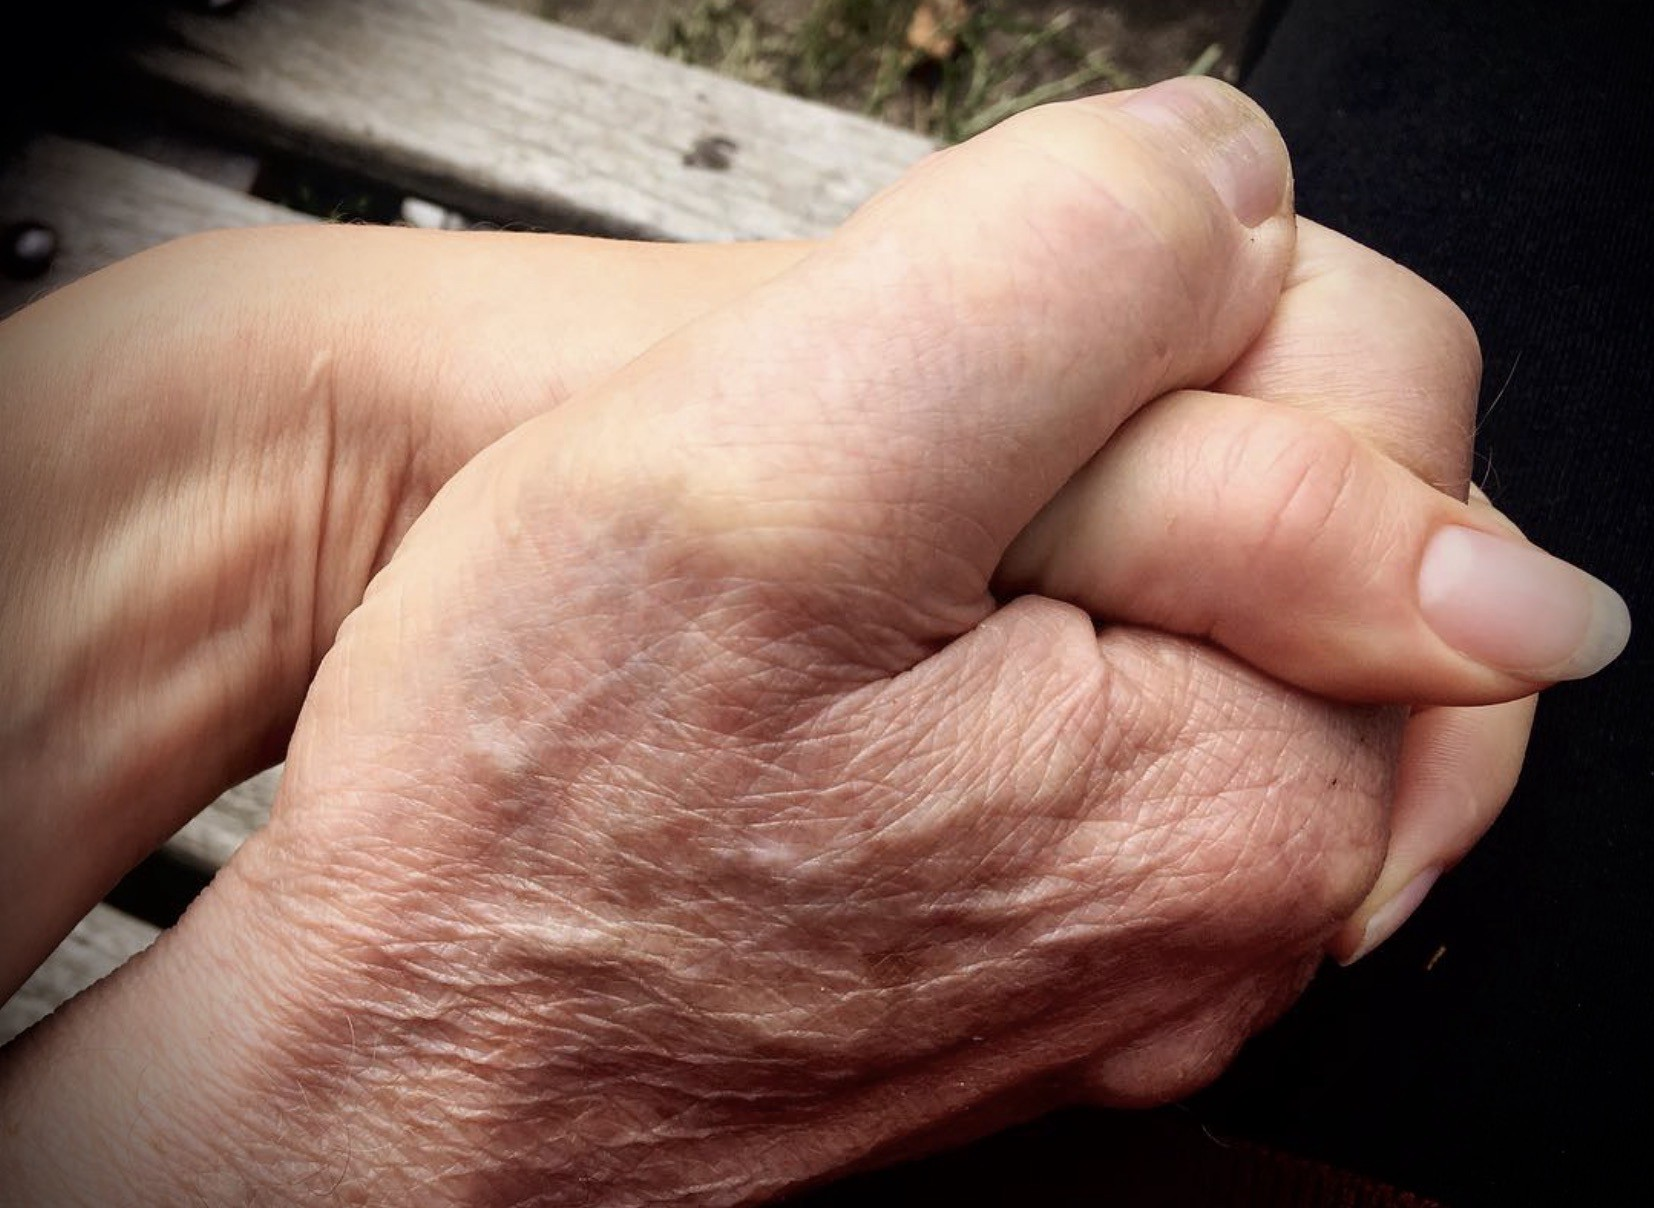 Young woman's hand holding her father's bigger, ageing hand